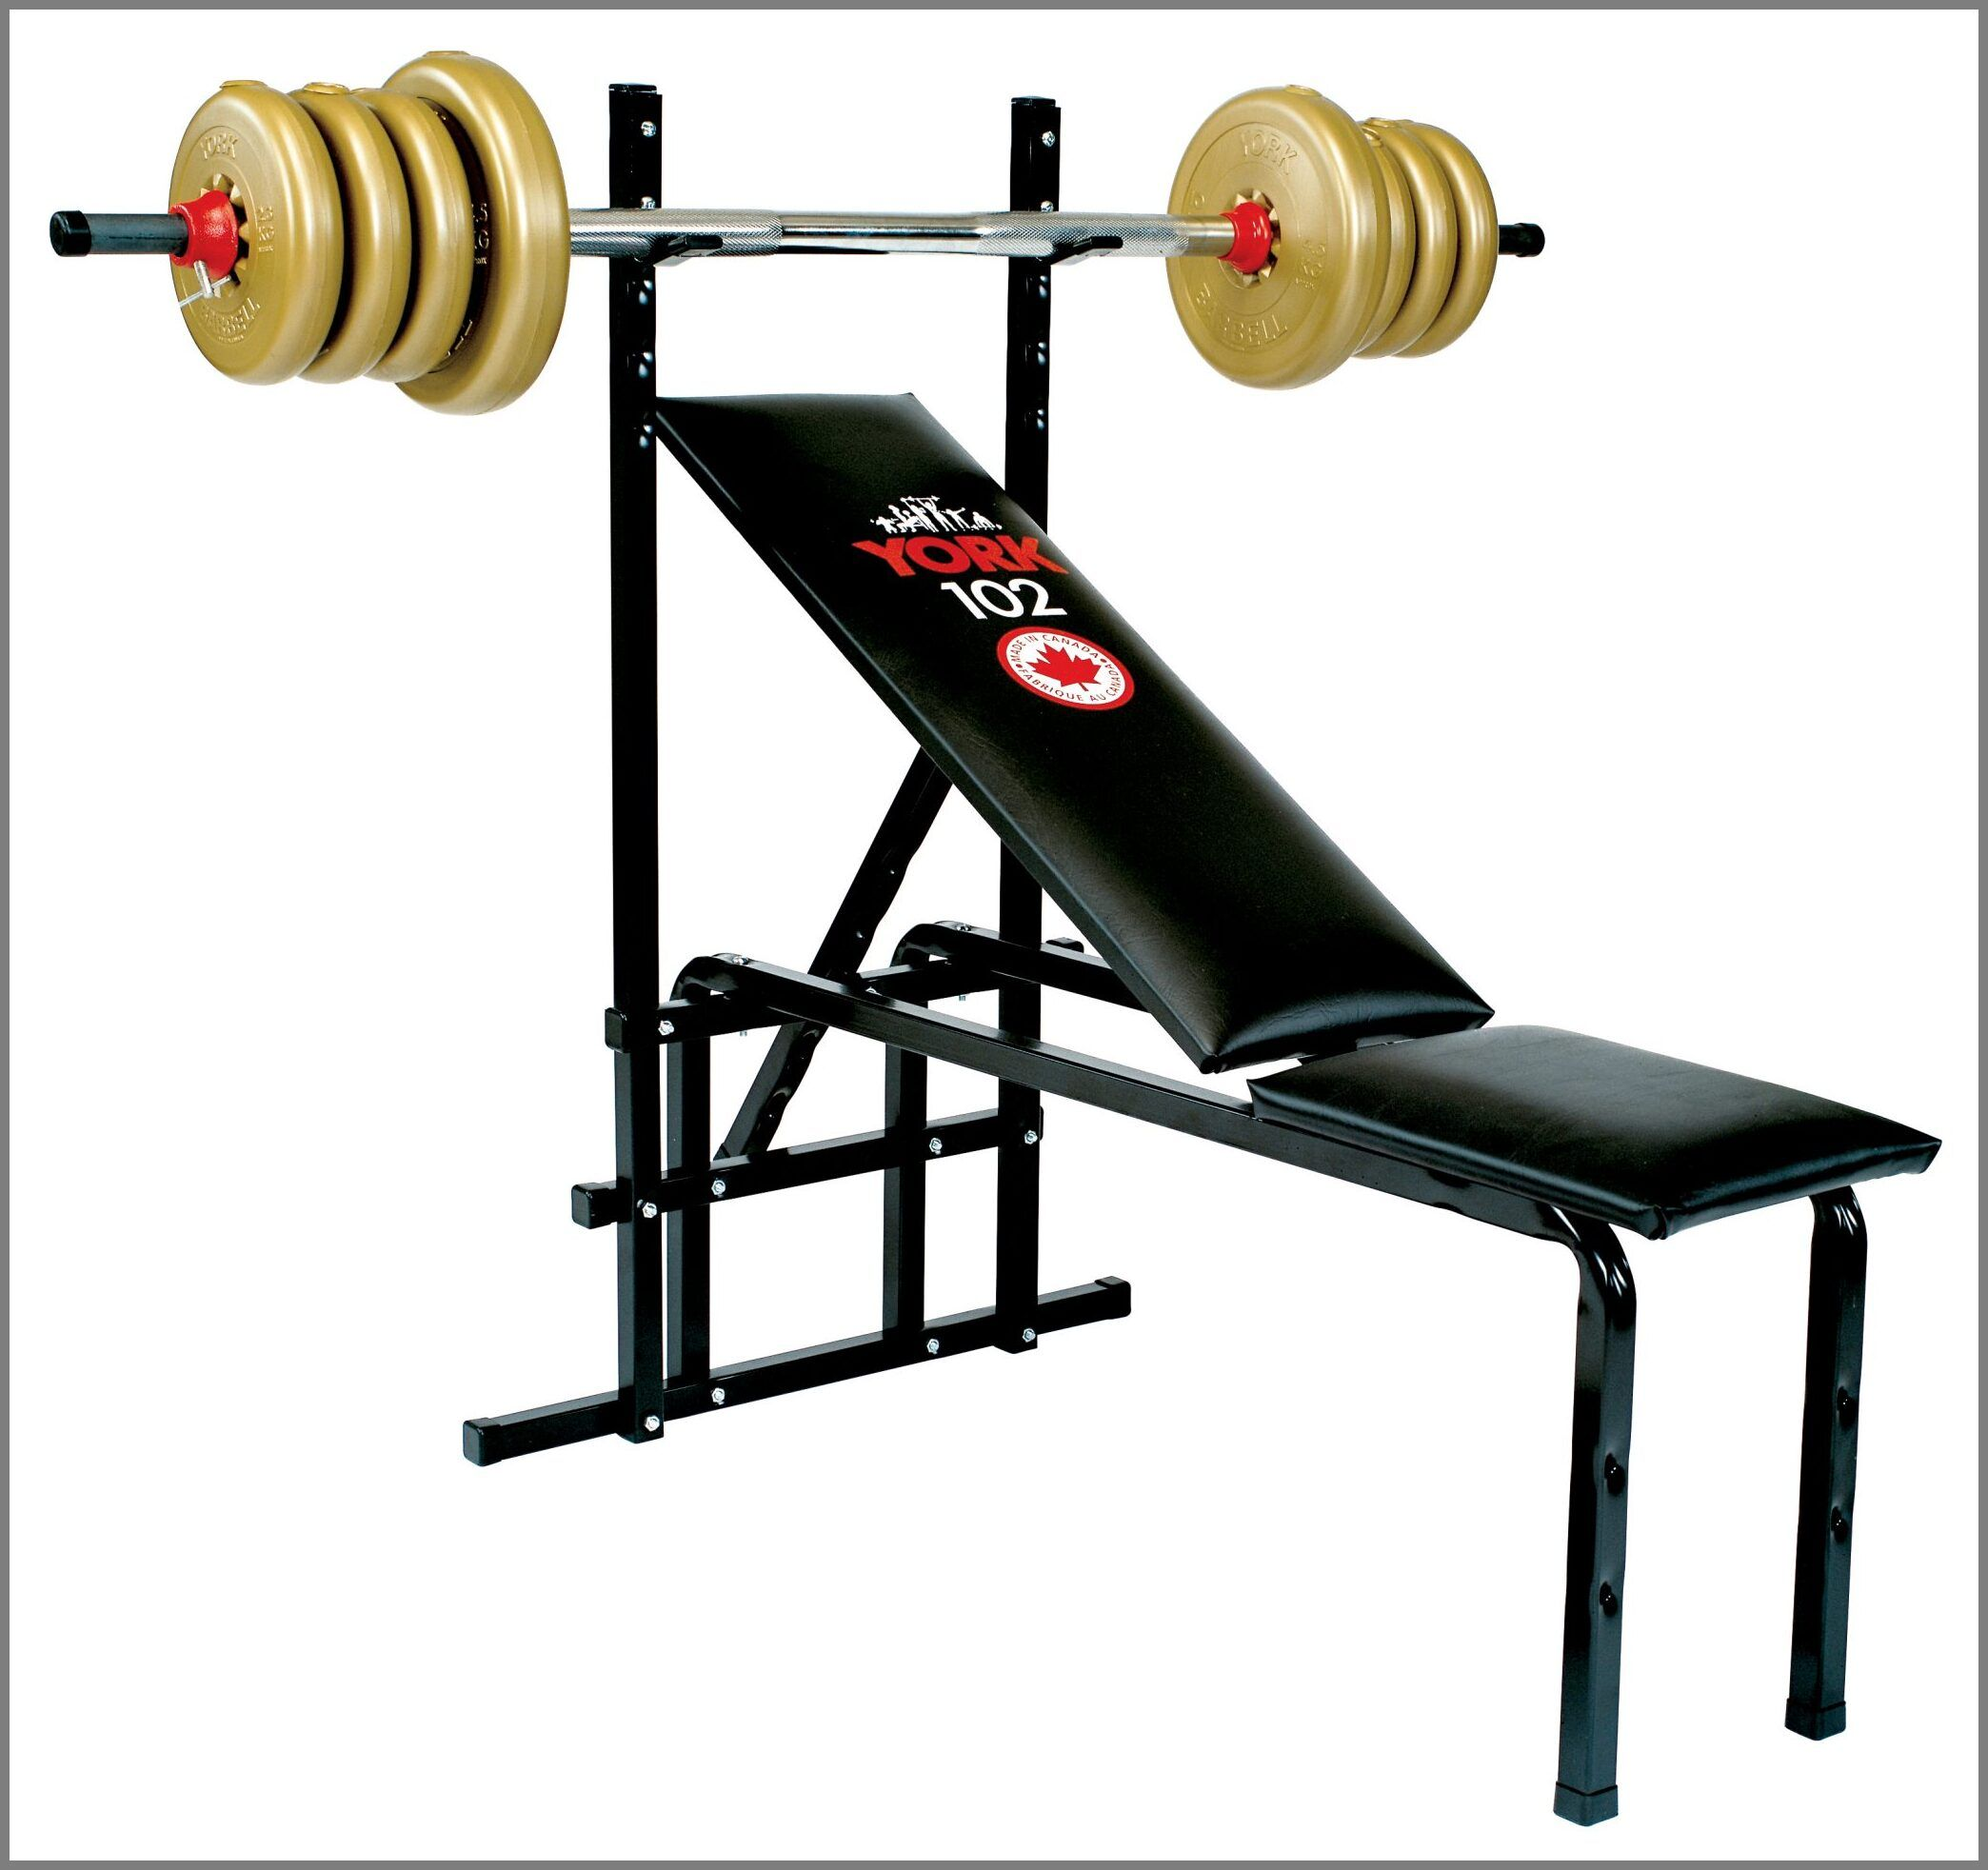 126 Reference Of Barbell Bench Set Price In 2020 Bench Set Bar Stool Makeover Benches For Sale